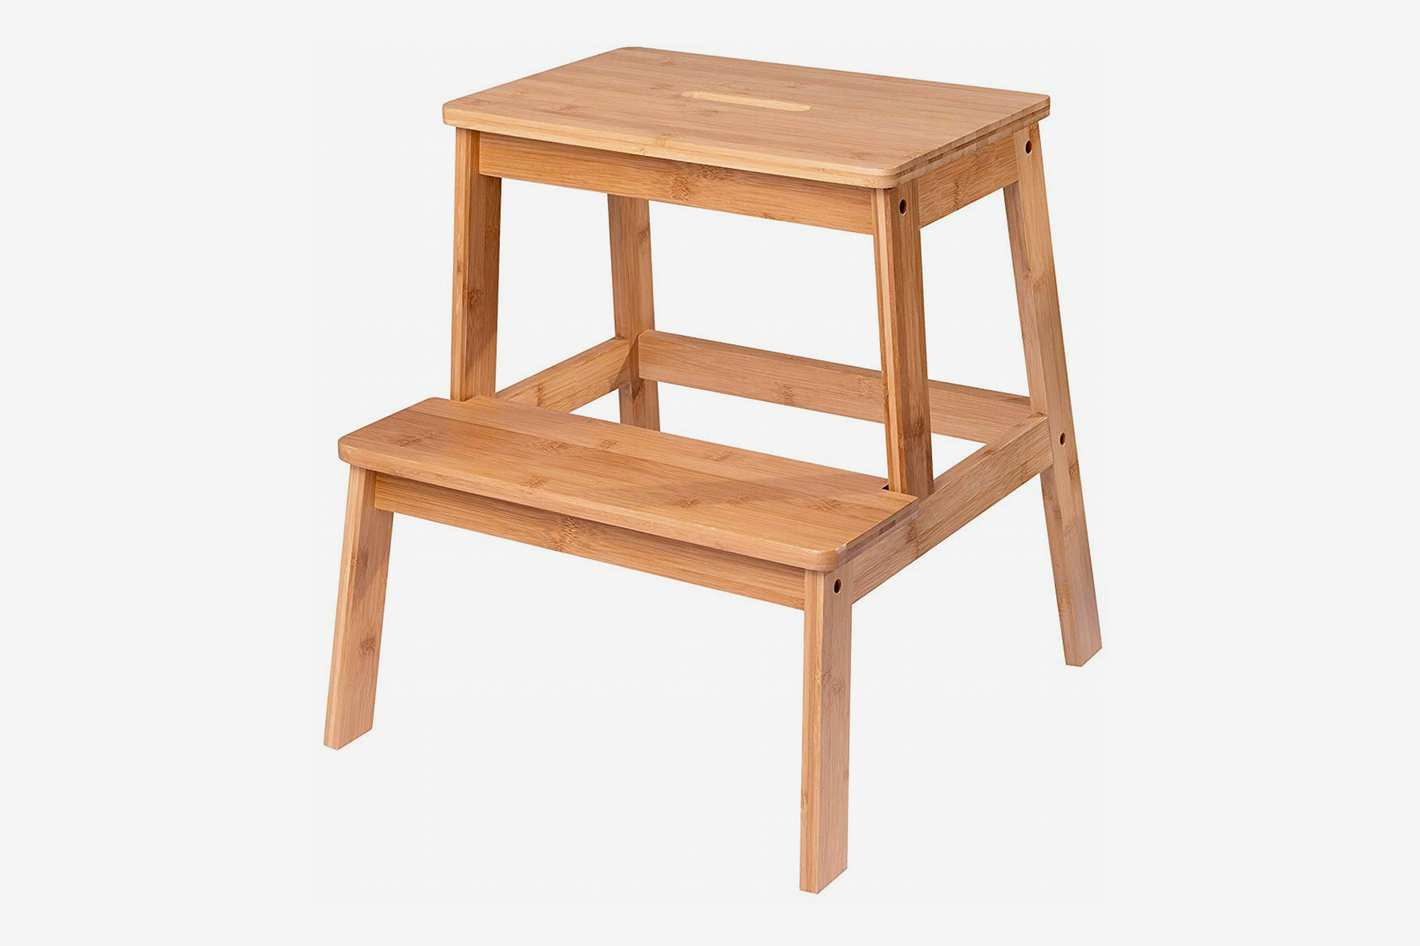 SPEED CARE Bamboo Step Stool